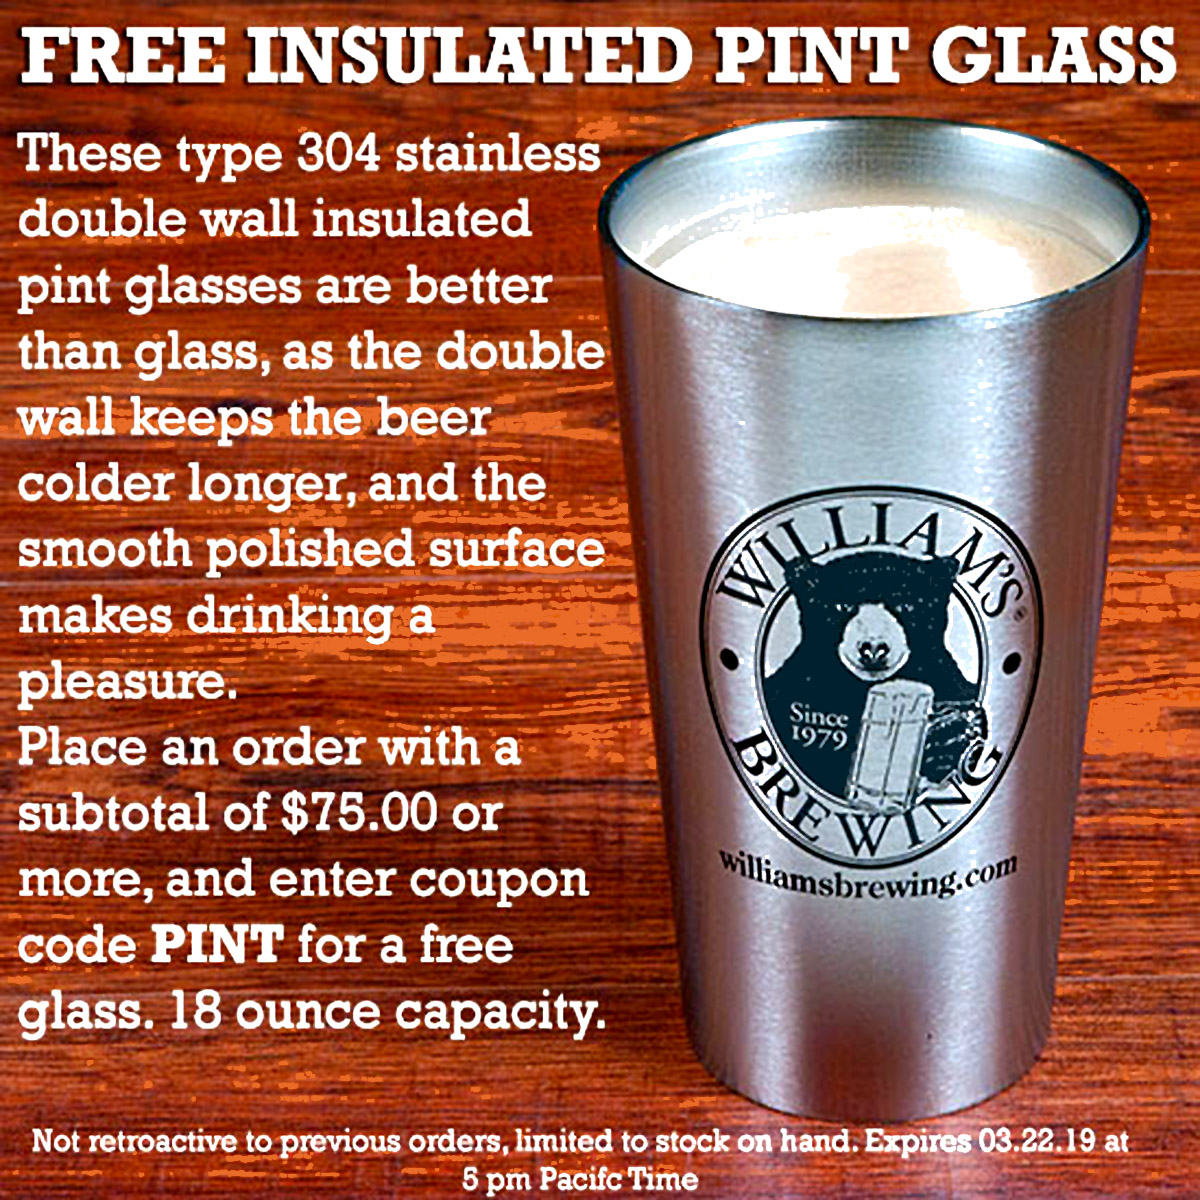 Home Wine Making Coupon Codes for Spend $75 And Get A Free Insulated Stainless Steel Pint Glass With This Williams Brewing Promo Code Coupon Code